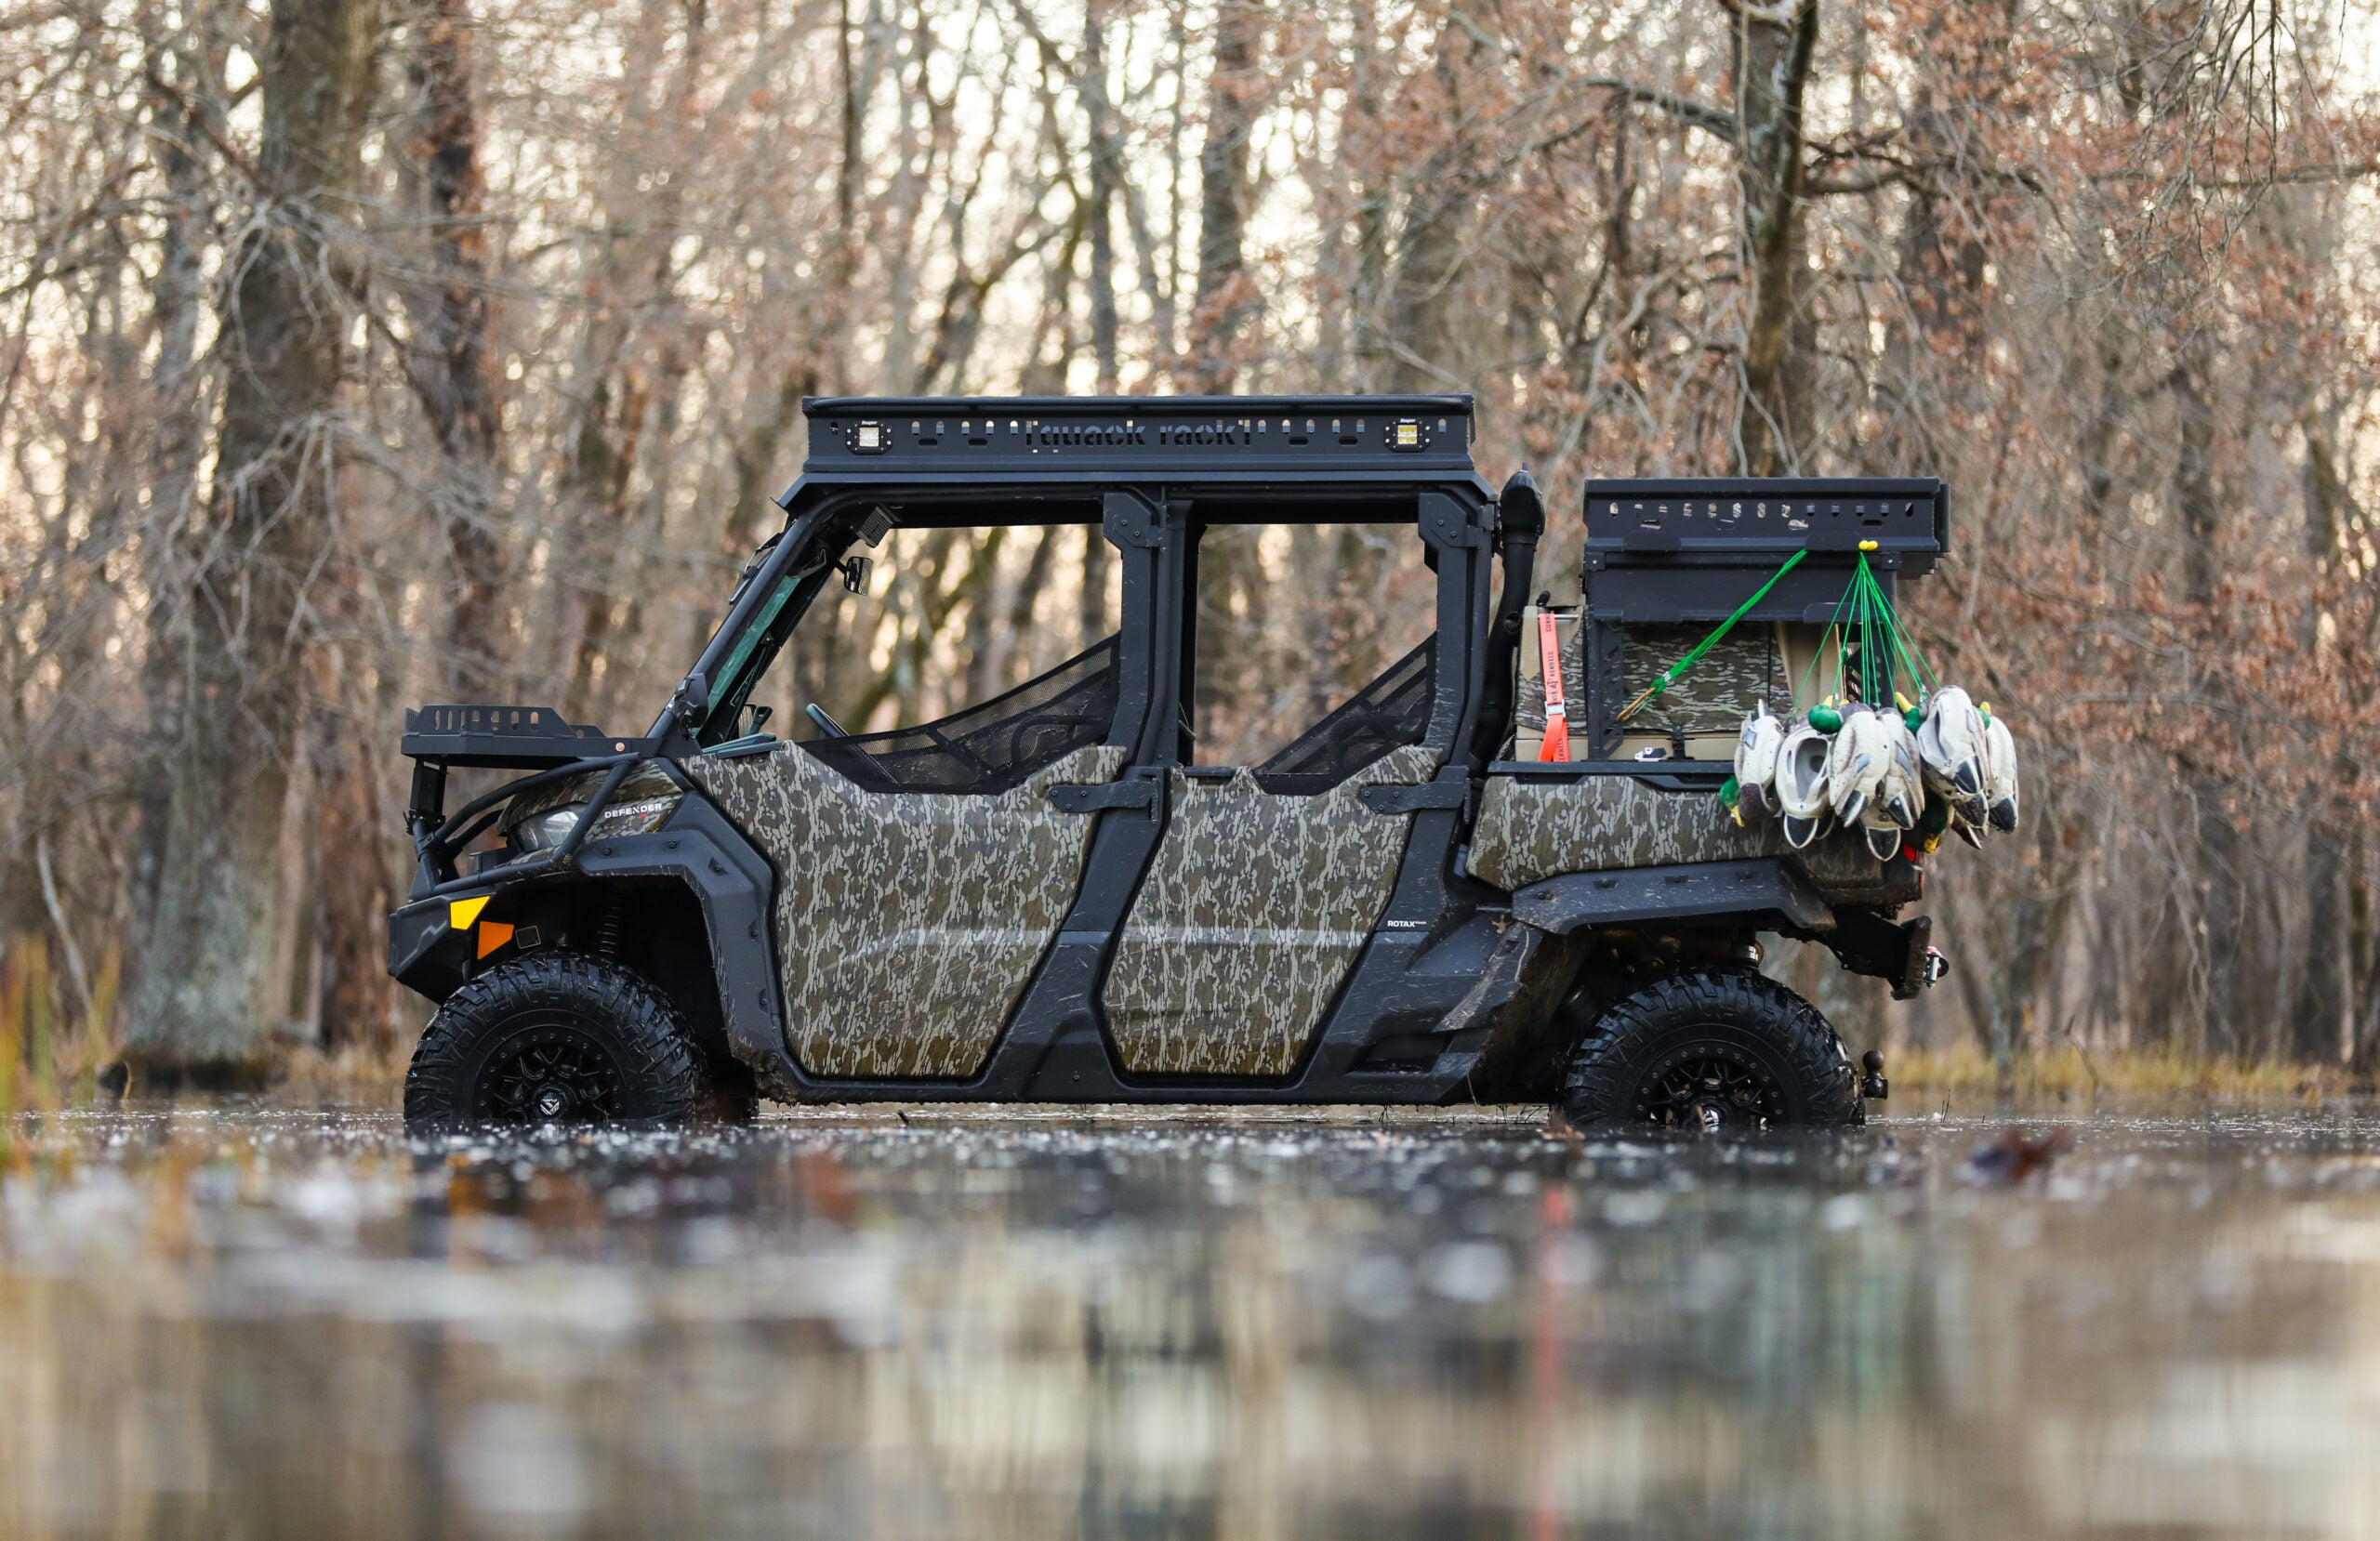 The customized Can-Am Defender.